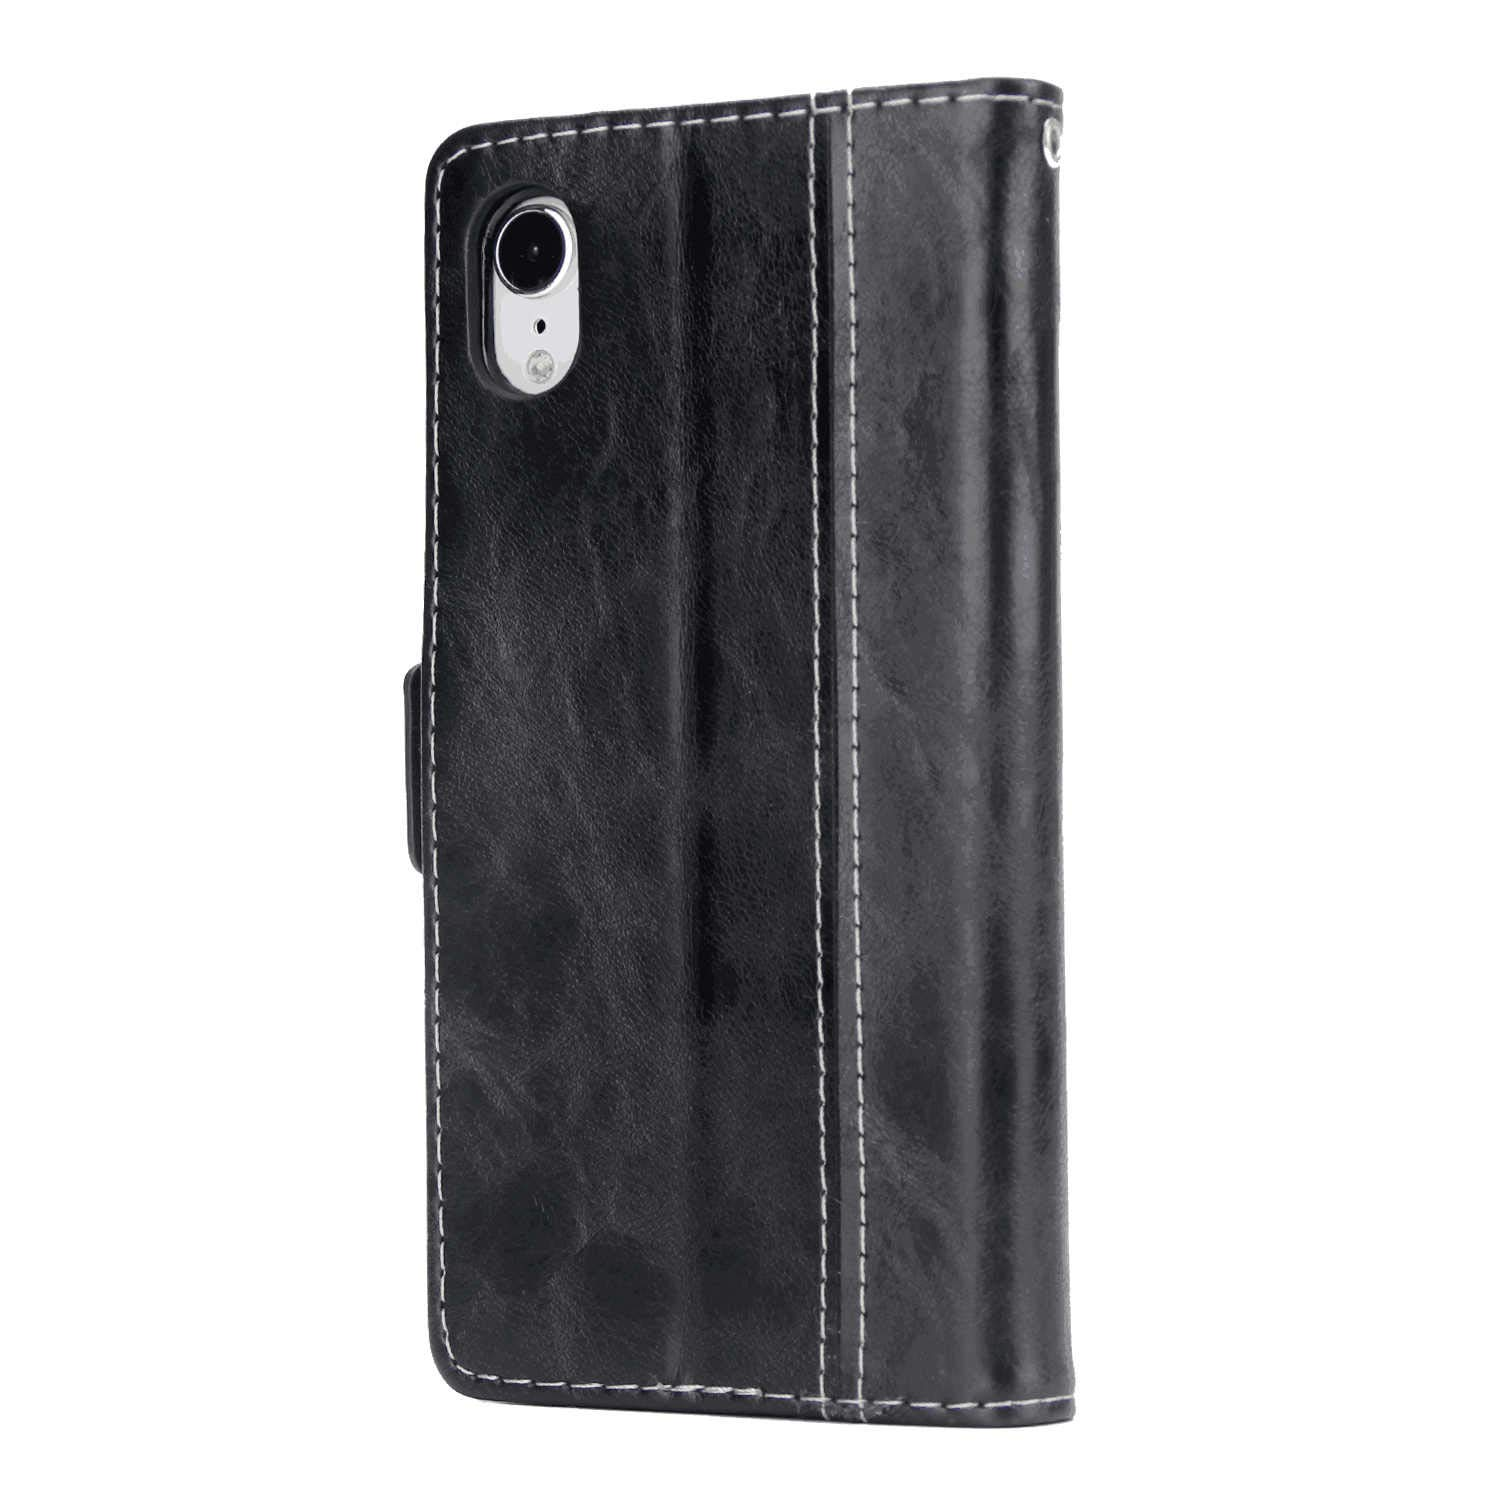 Cover for Samsung Galaxy S9 Leather Kickstand Cell Phone Cover Luxury Business Card Holders with Free Waterproof-Bag White1 Samsung Galaxy S9 Flip Case